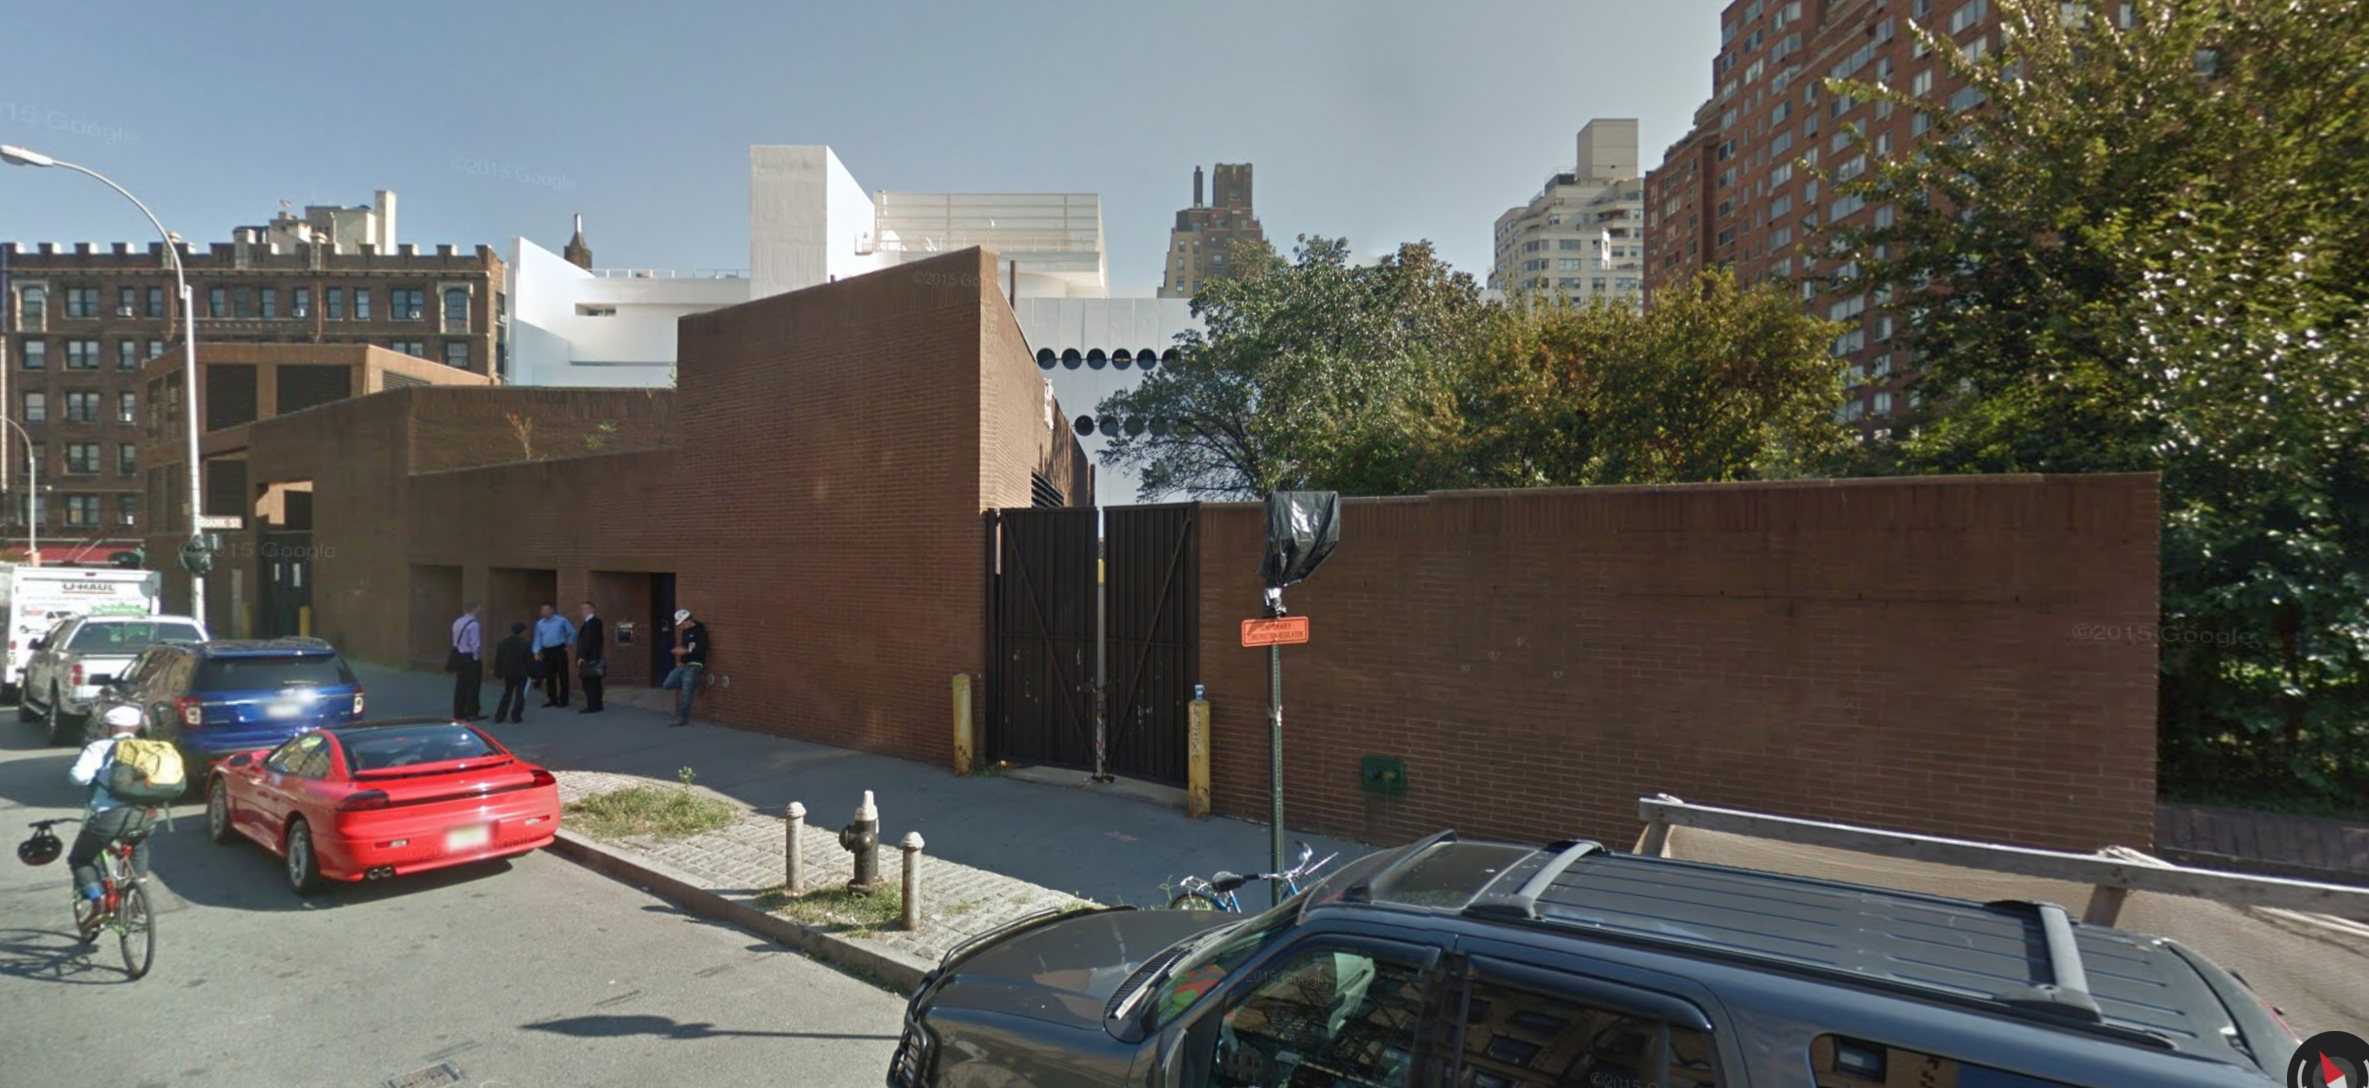 76 Greenwich Avenue in September 2014. Via Google Maps